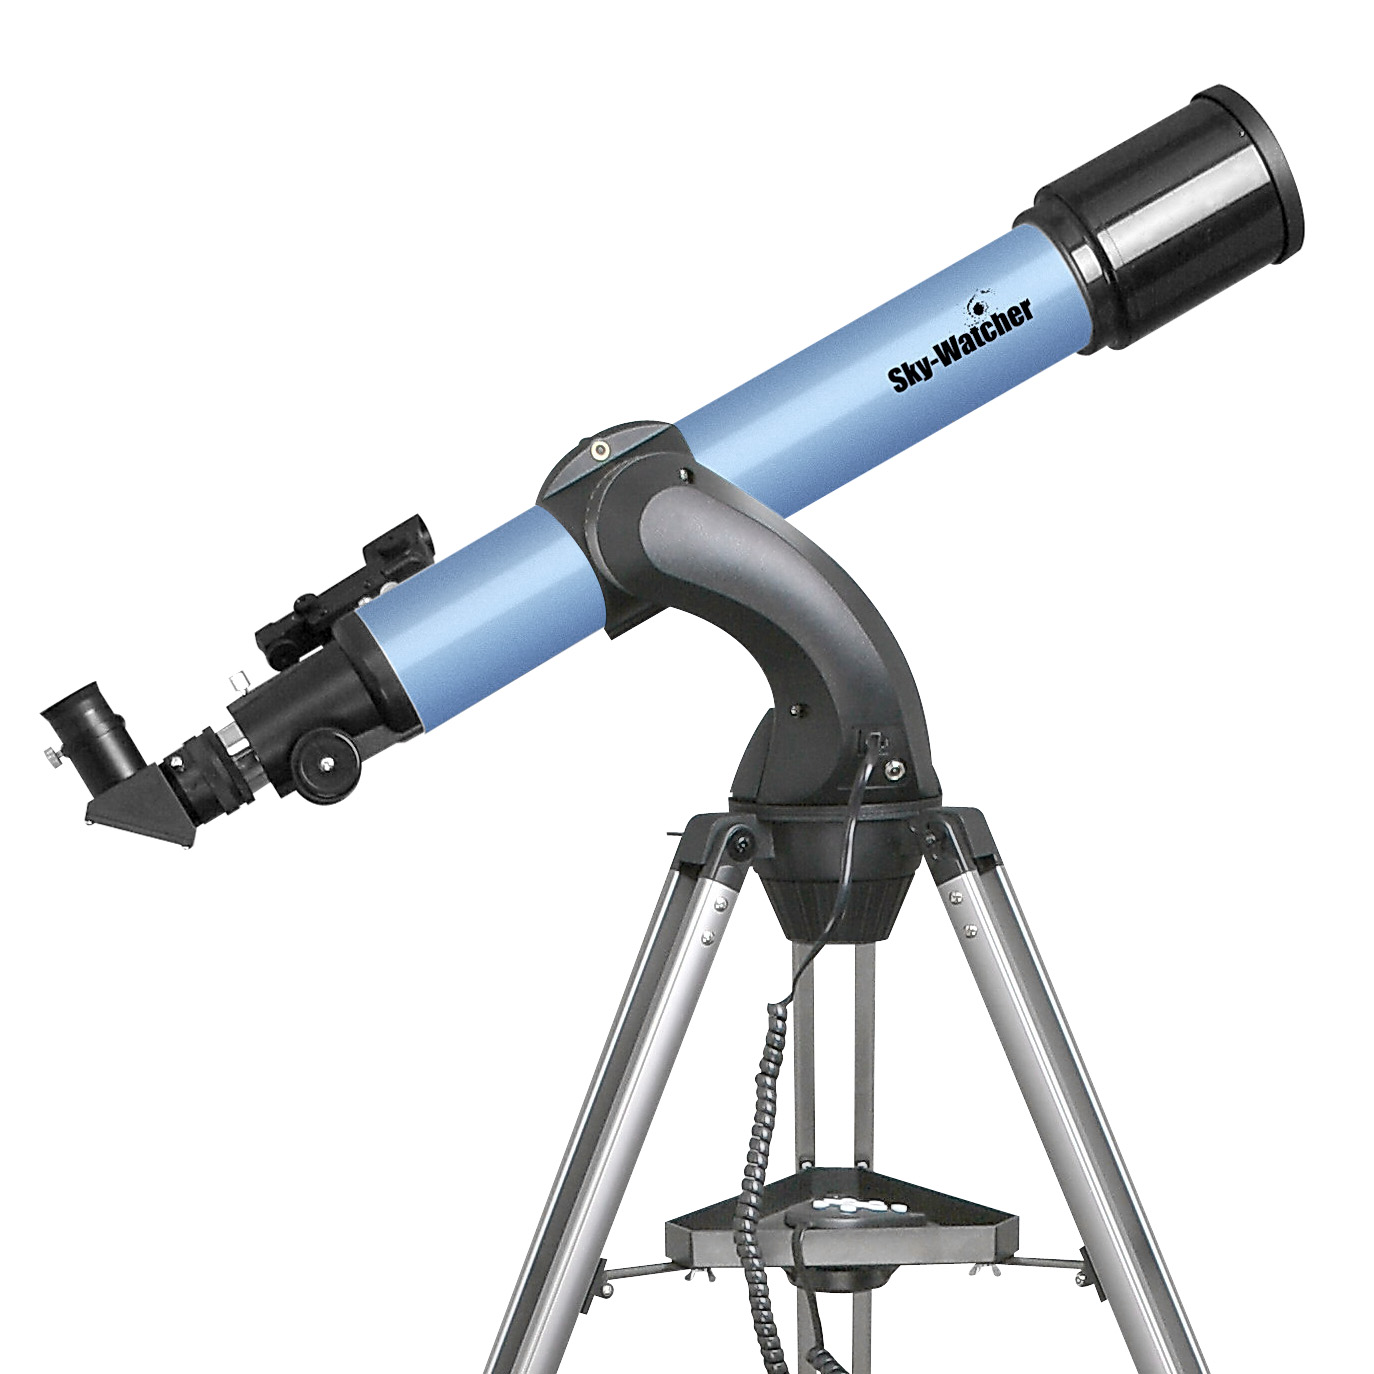 Sky-Watcher 70mm f/700 motorised Achromatic Refractor - Click Image to Close